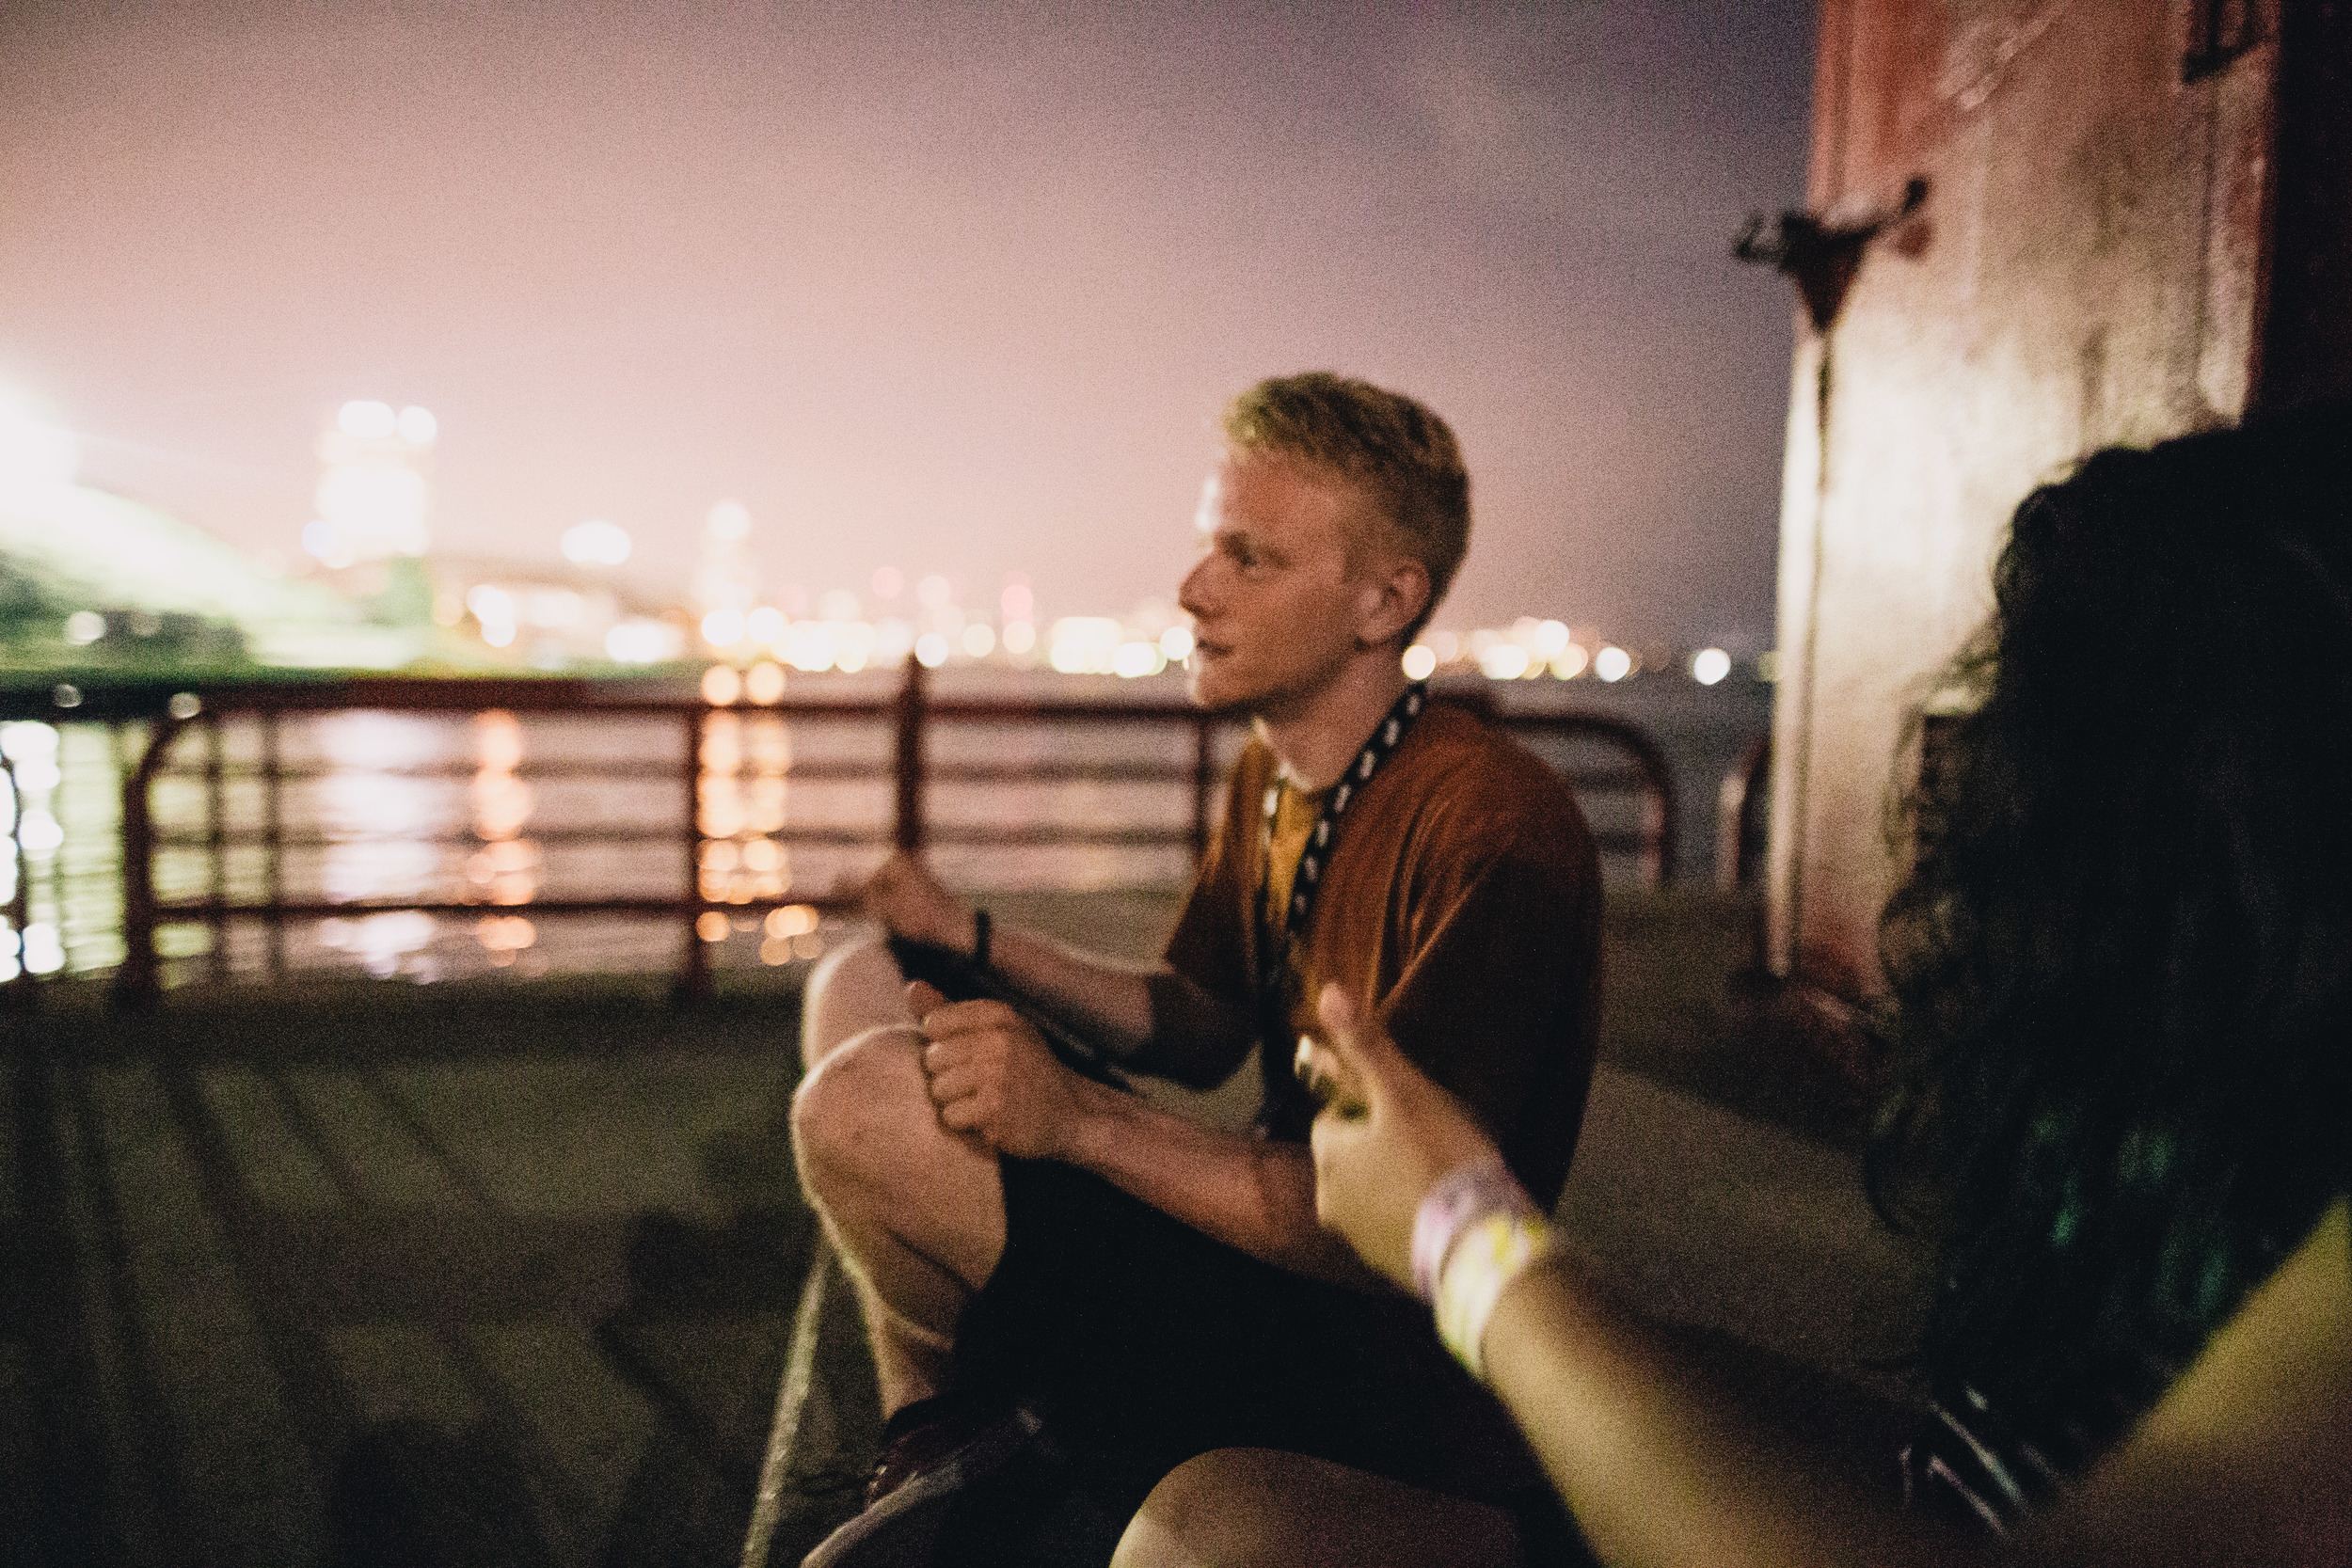 Me hanging at some lighthouse in the dark after the show. My friend Anam took this.